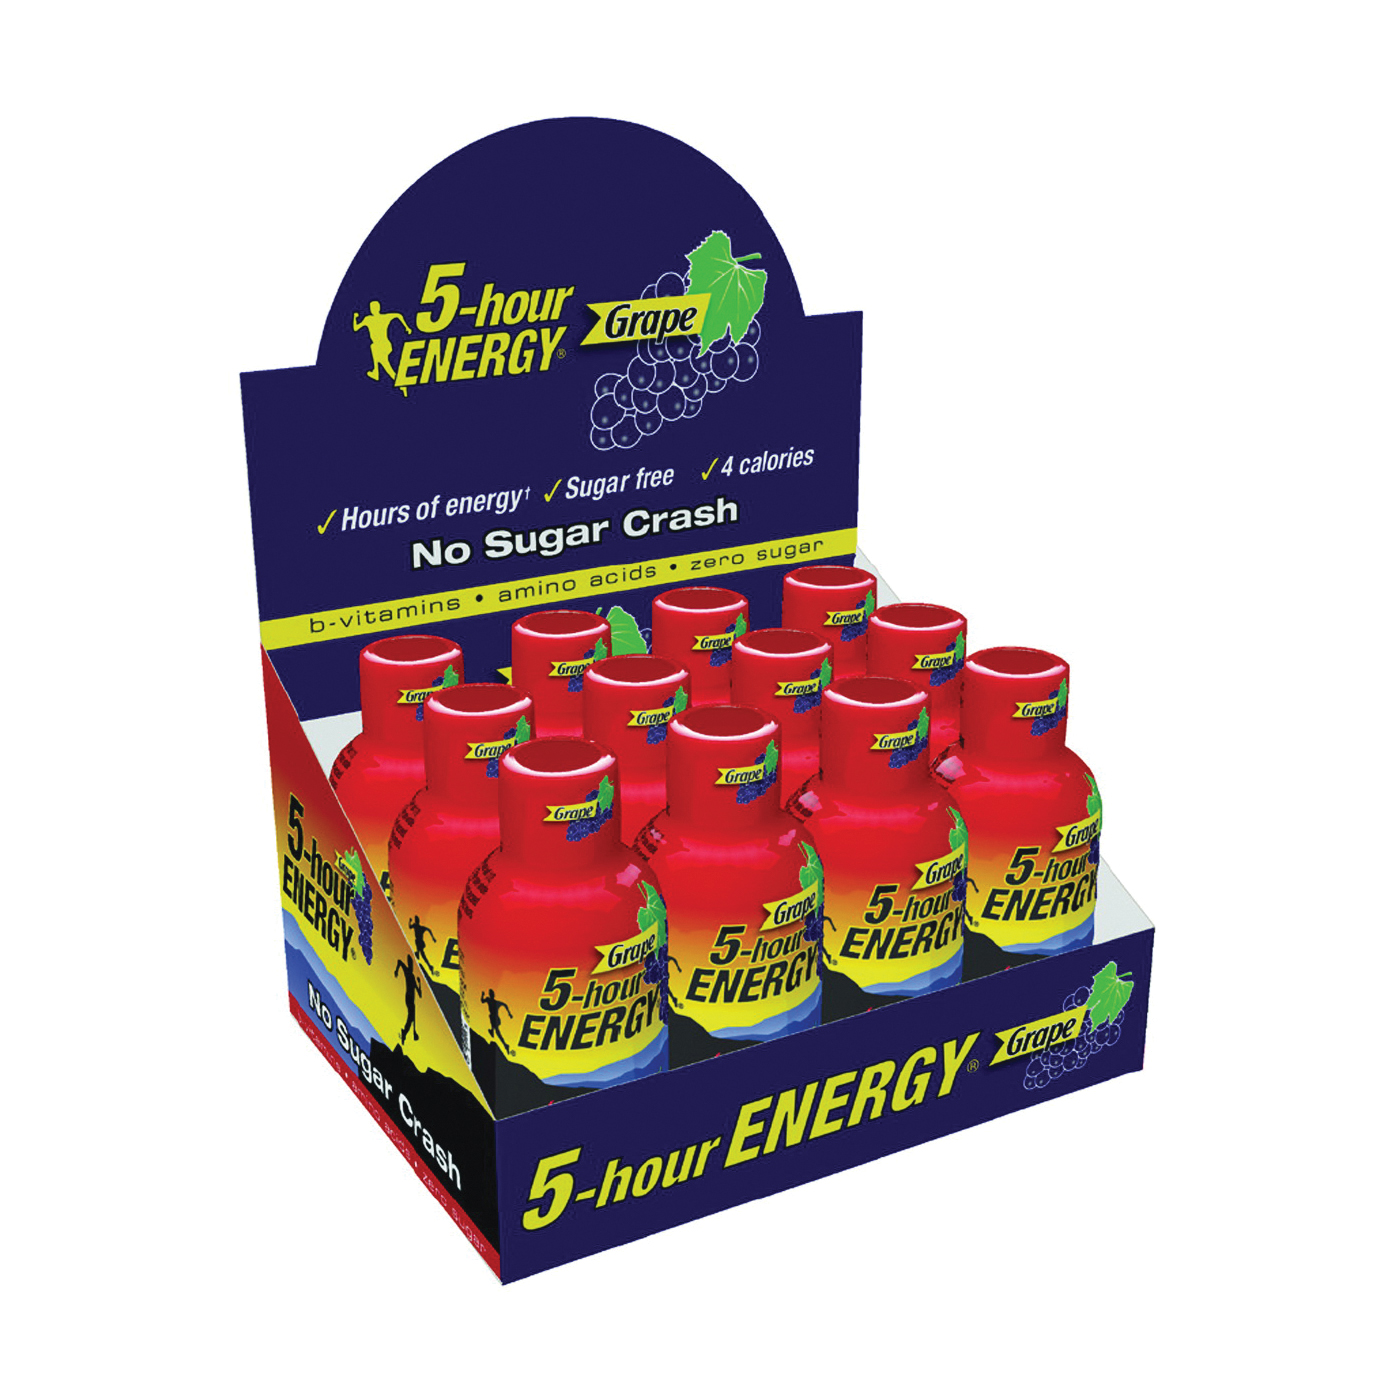 Picture of 5-hour ENERGY 218123 Sugar-Free Energy Drink, Liquid, Grape Flavor, 1.93 oz Package, Bottle